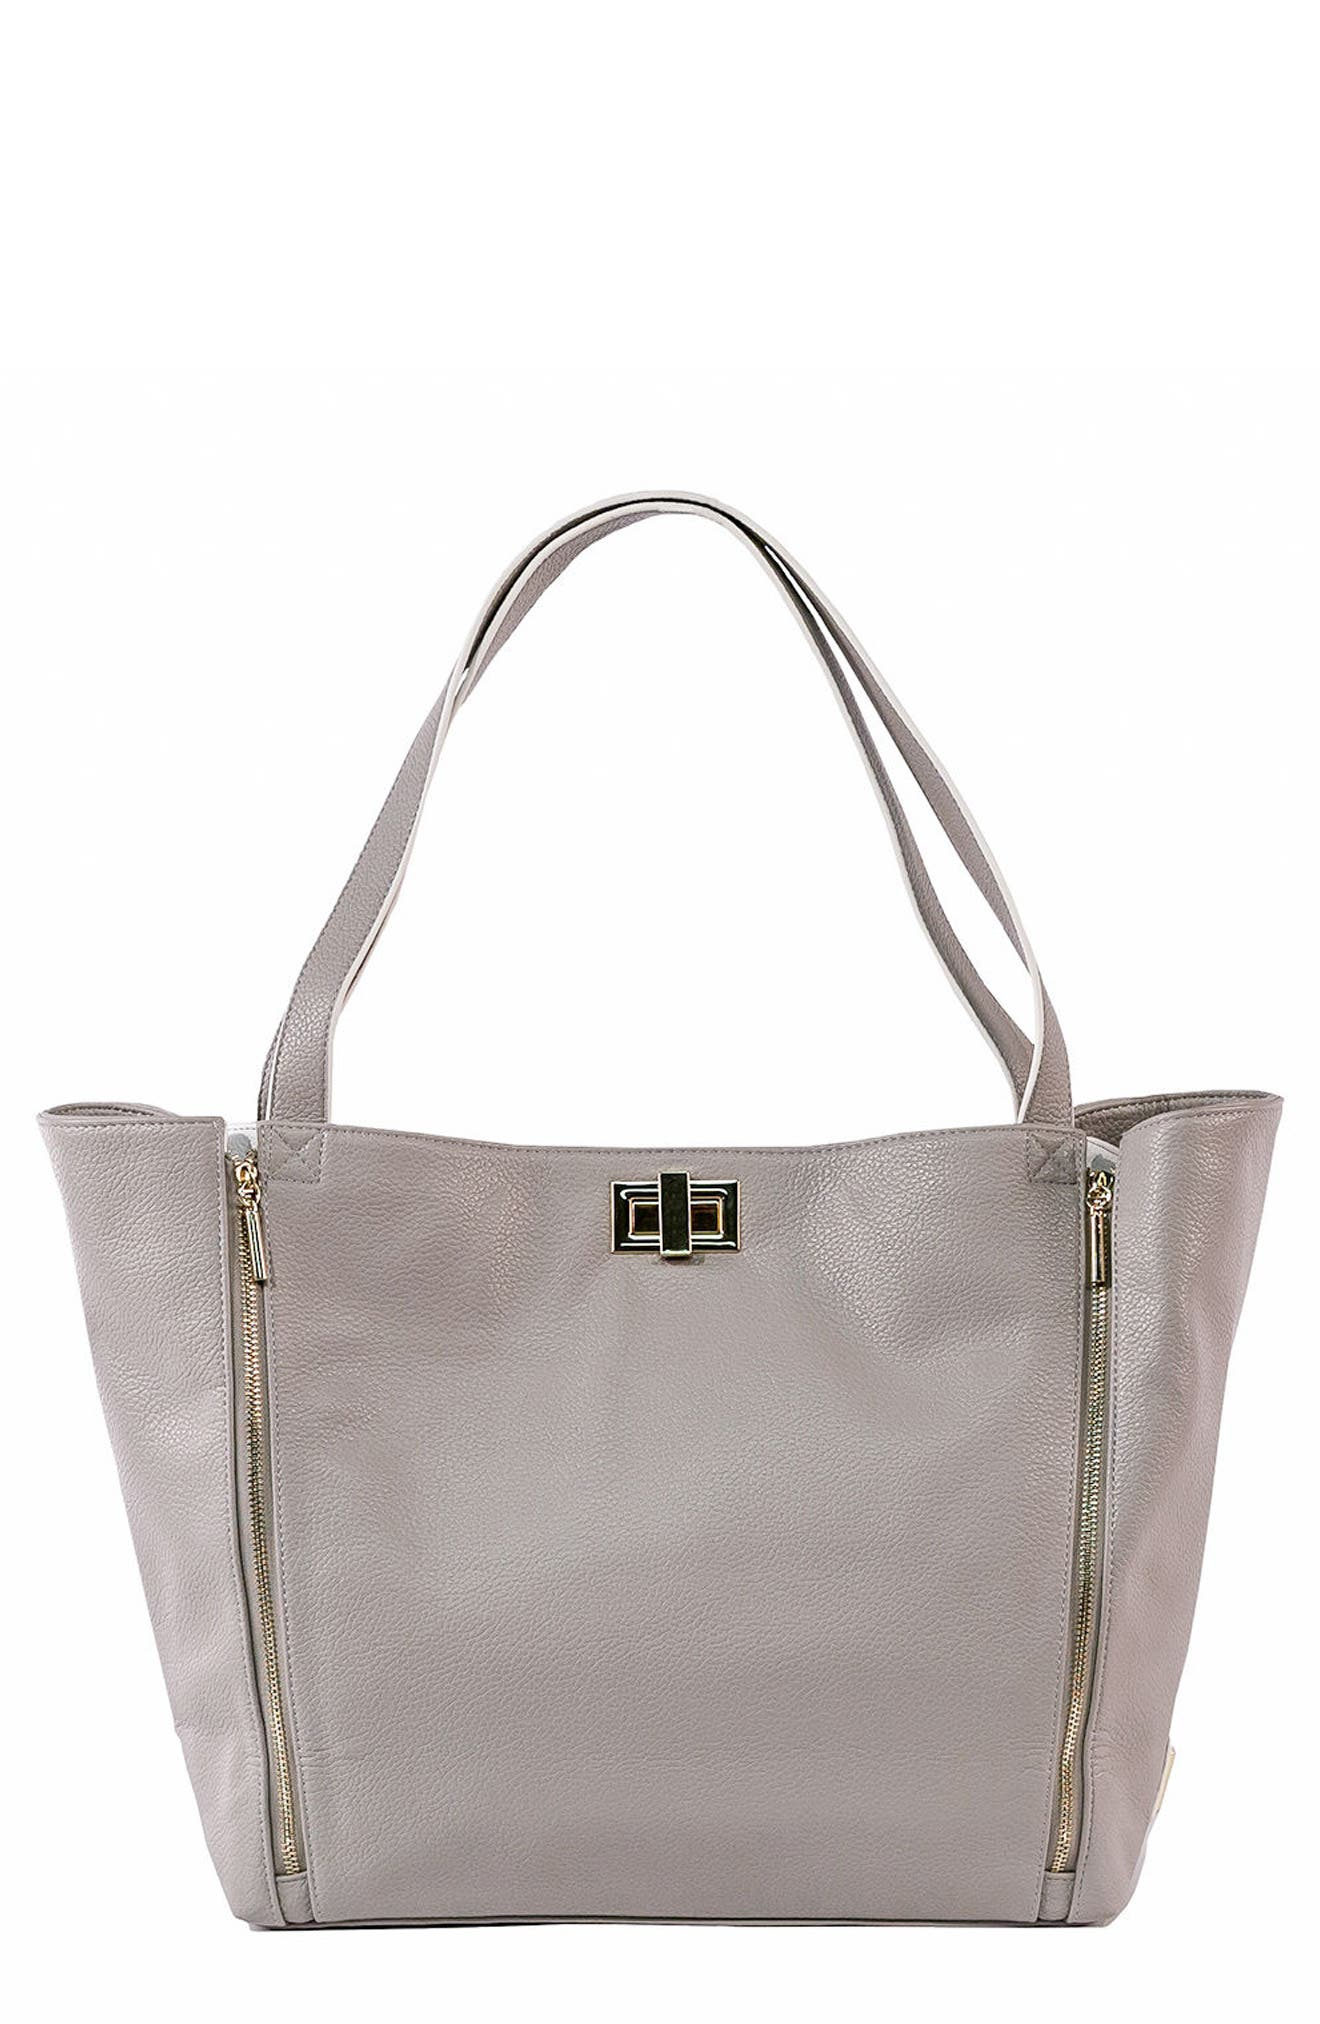 Sloane Diaper Bag,                         Main,                         color, NEUTRAL/ WHITE